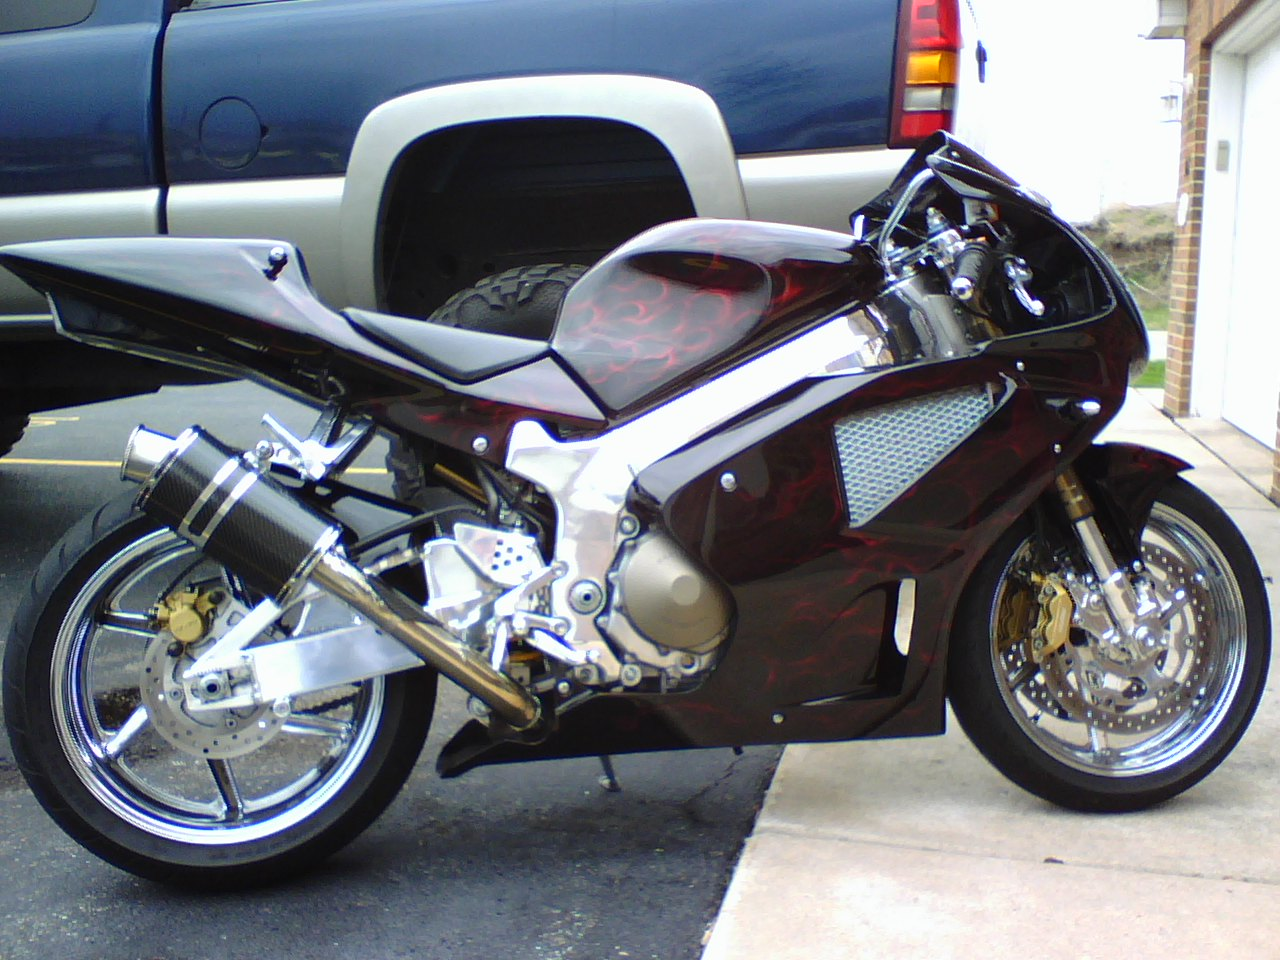 Honda Accord Sport For Sale >> Custom 2000 Honda RC51 For Sale - Sportbikes.net